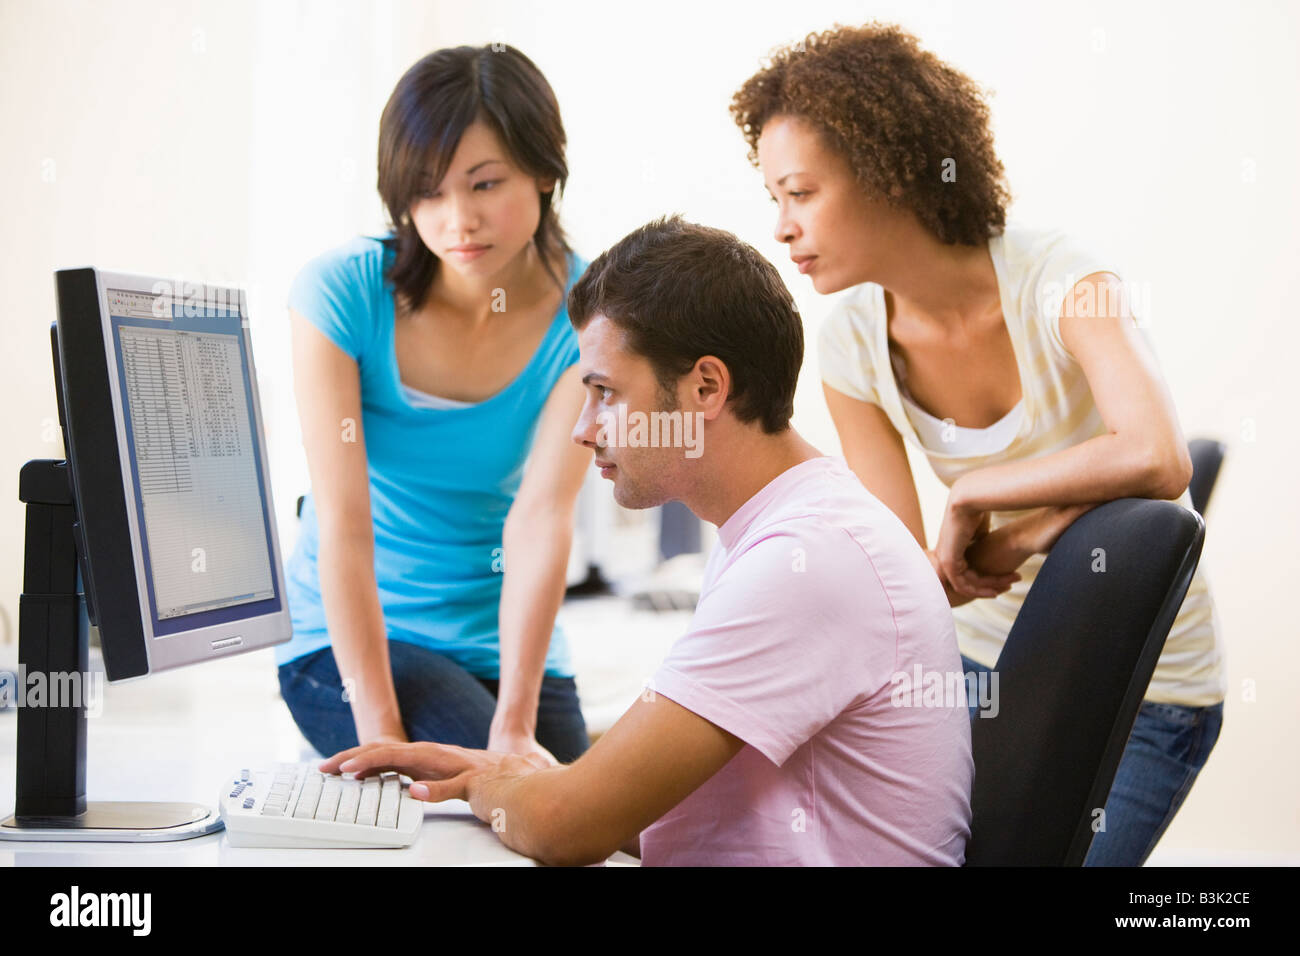 Three people sitting in computer room looking at monitor - Stock Image